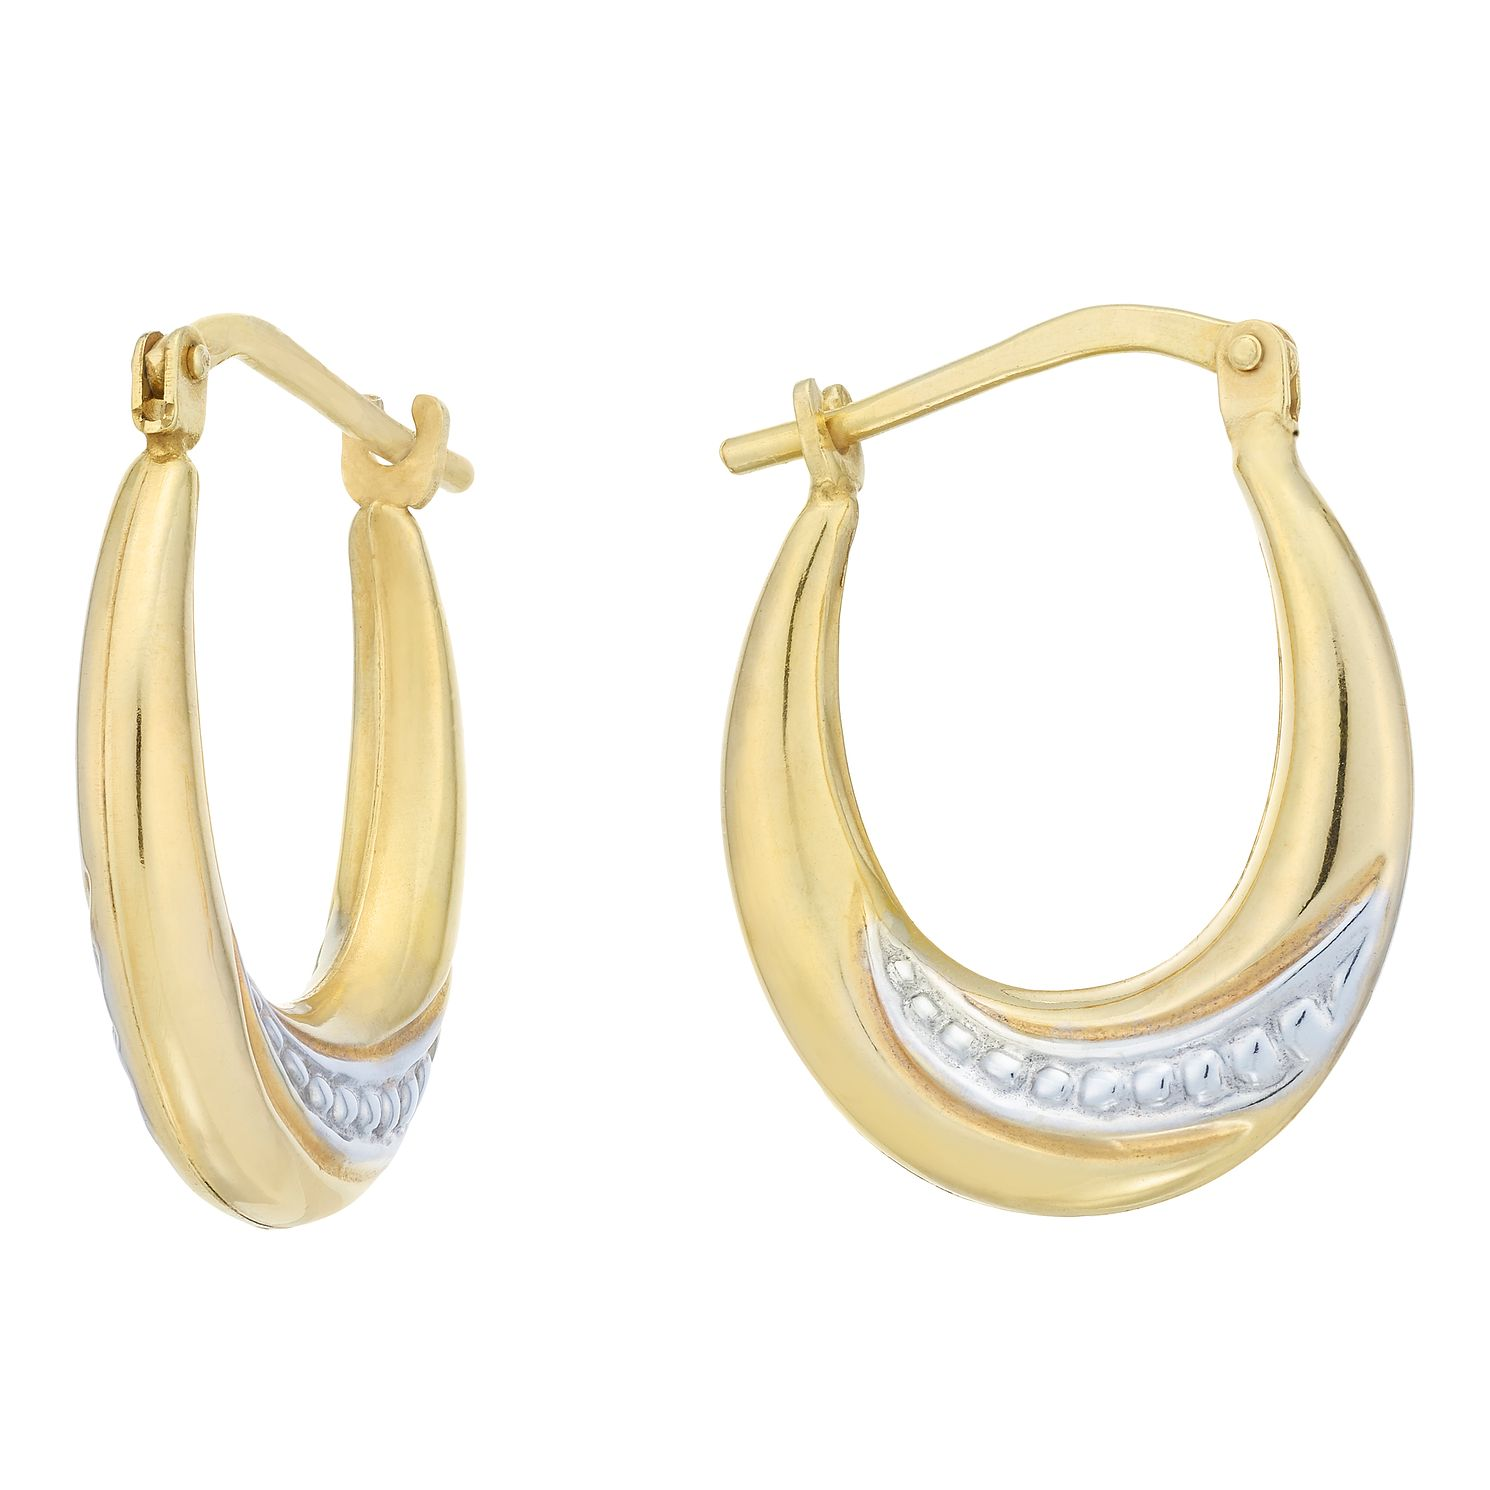 spin cubic s qlt earrings dolphin yellow round wid type zirconia prod gold hei post p girl